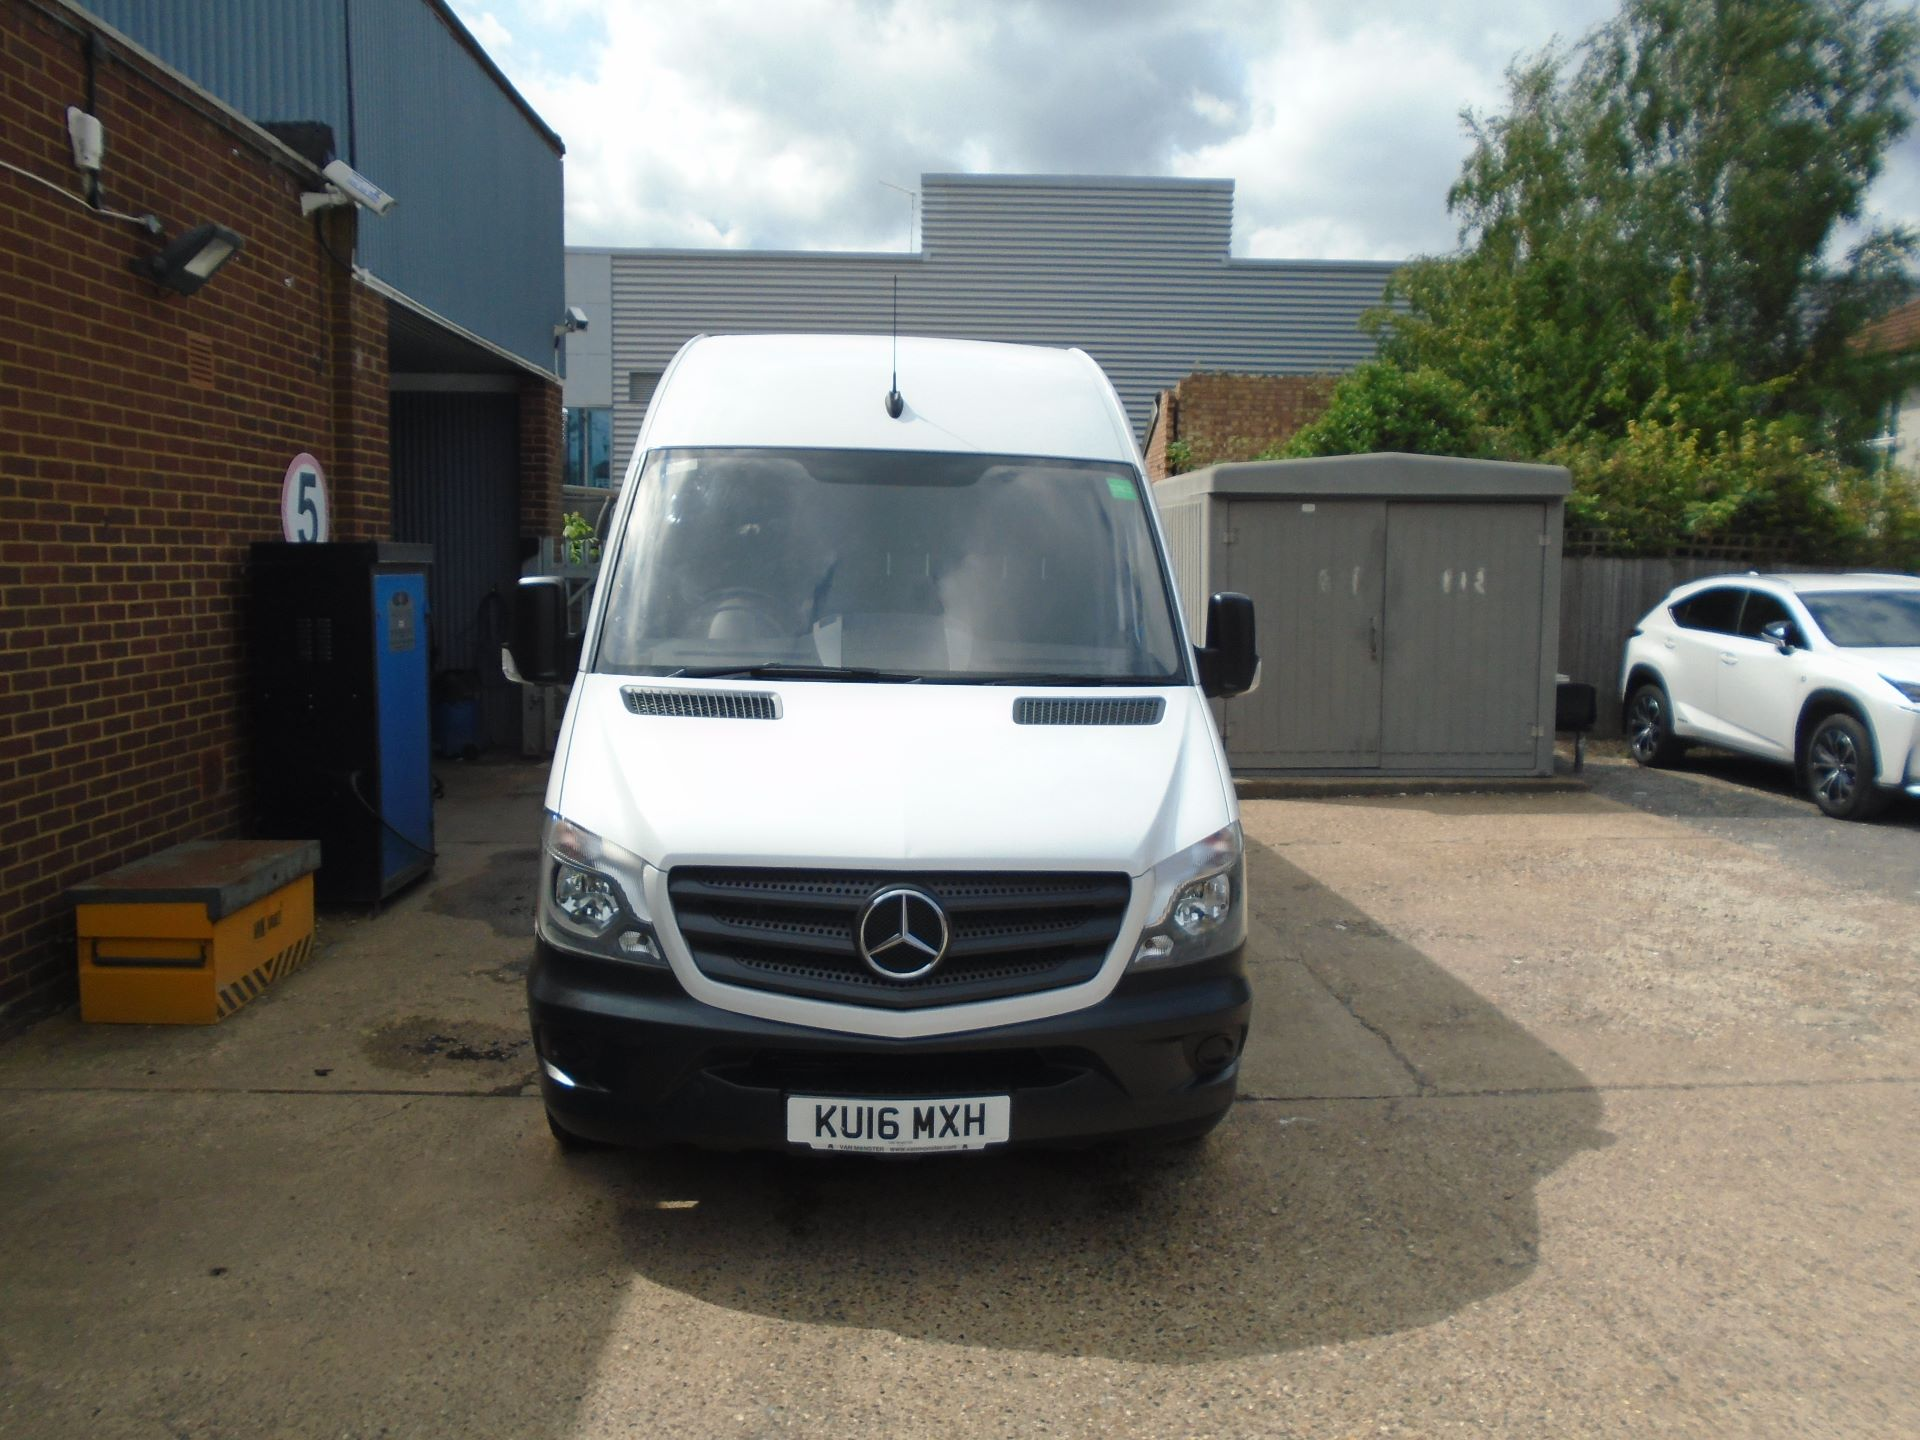 2016 Mercedes-Benz Sprinter 3.5T High Roof Van EURO 5 (KU16MXH) Thumbnail 6